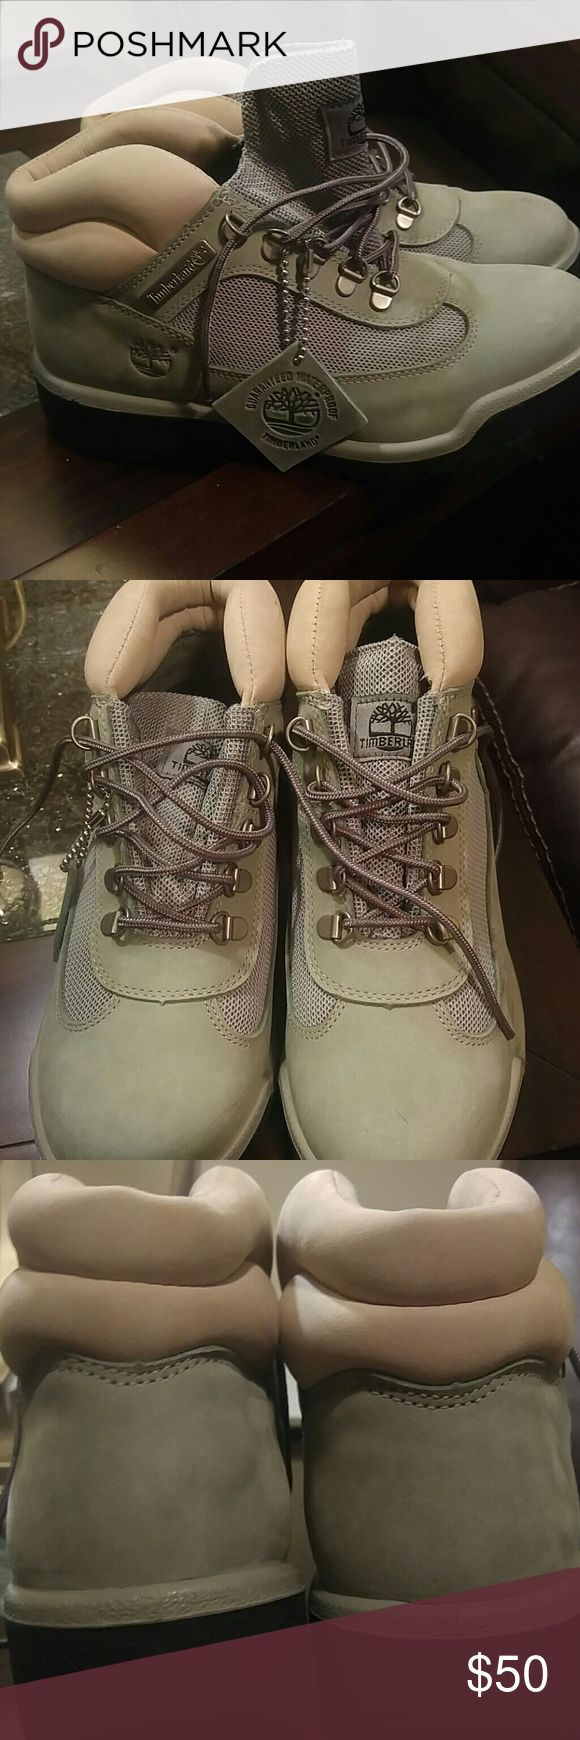 Timberland Field Boots in Powder green NWT Timberland Field Boots in Powder Green. Has a beige trim on top. These have never been worn. Timberland Shoes Winter & Rain Boots